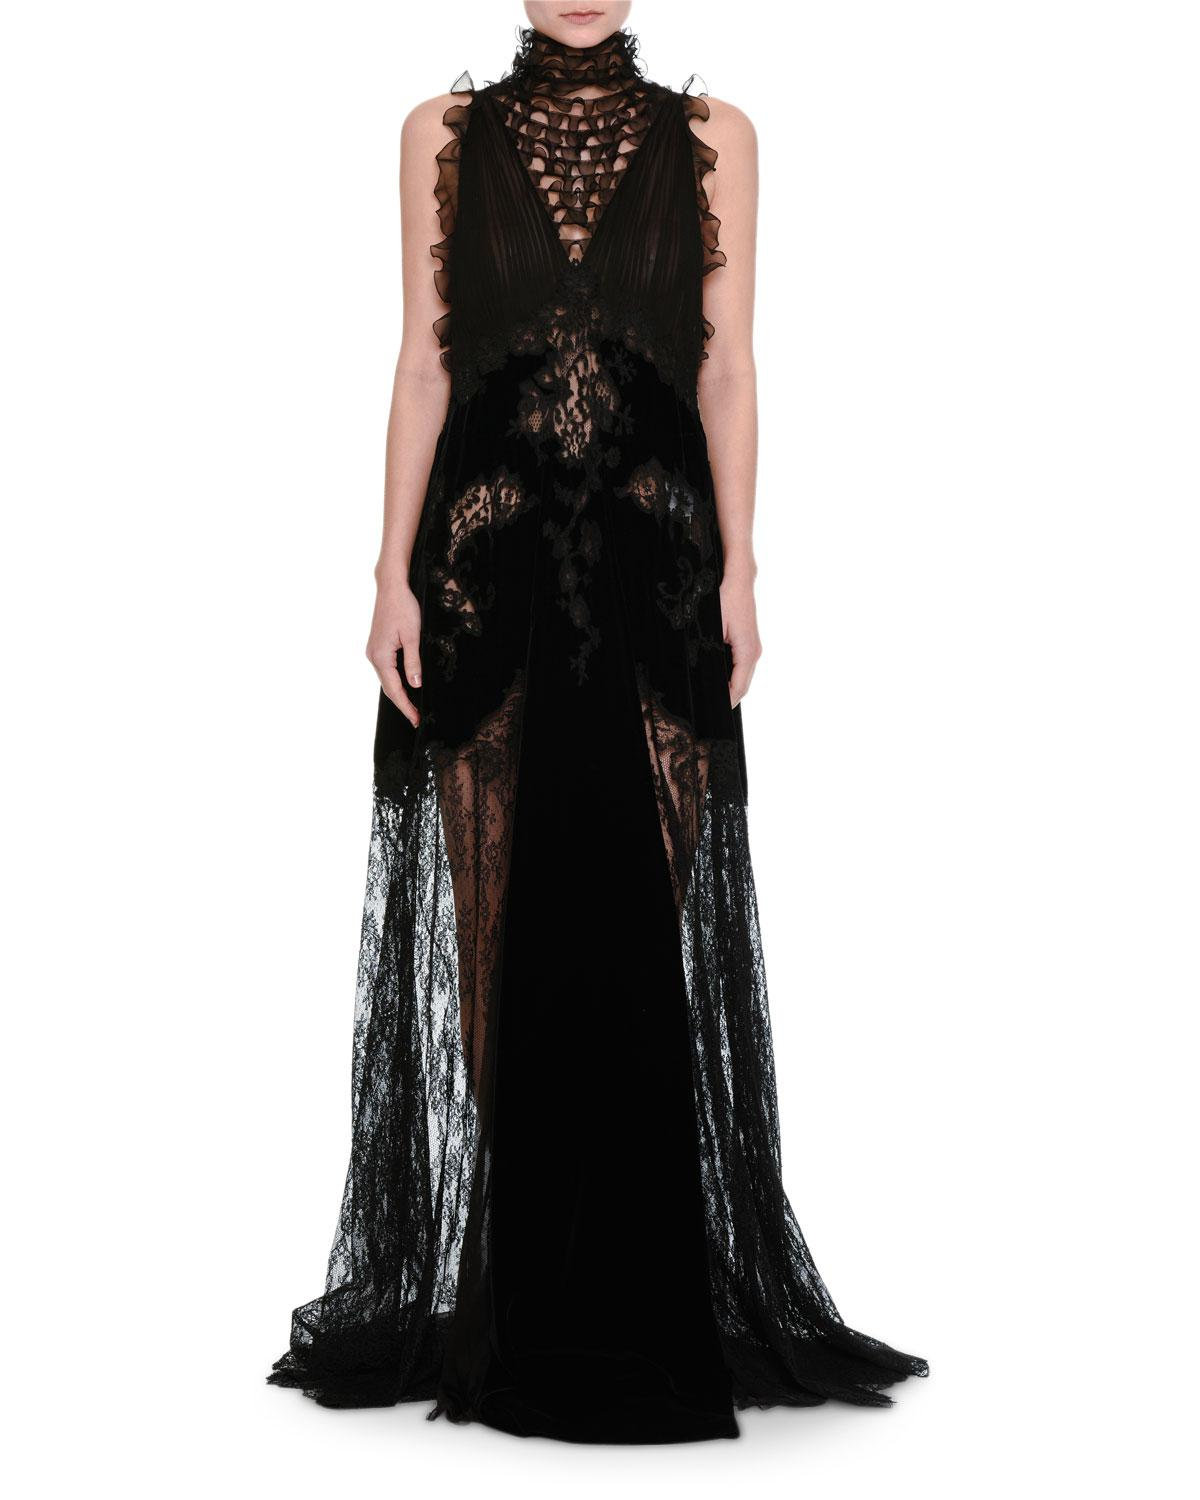 Lyst - Valentino Lace & Chiffon Mock-neck Gown With Velvet Trim in Black